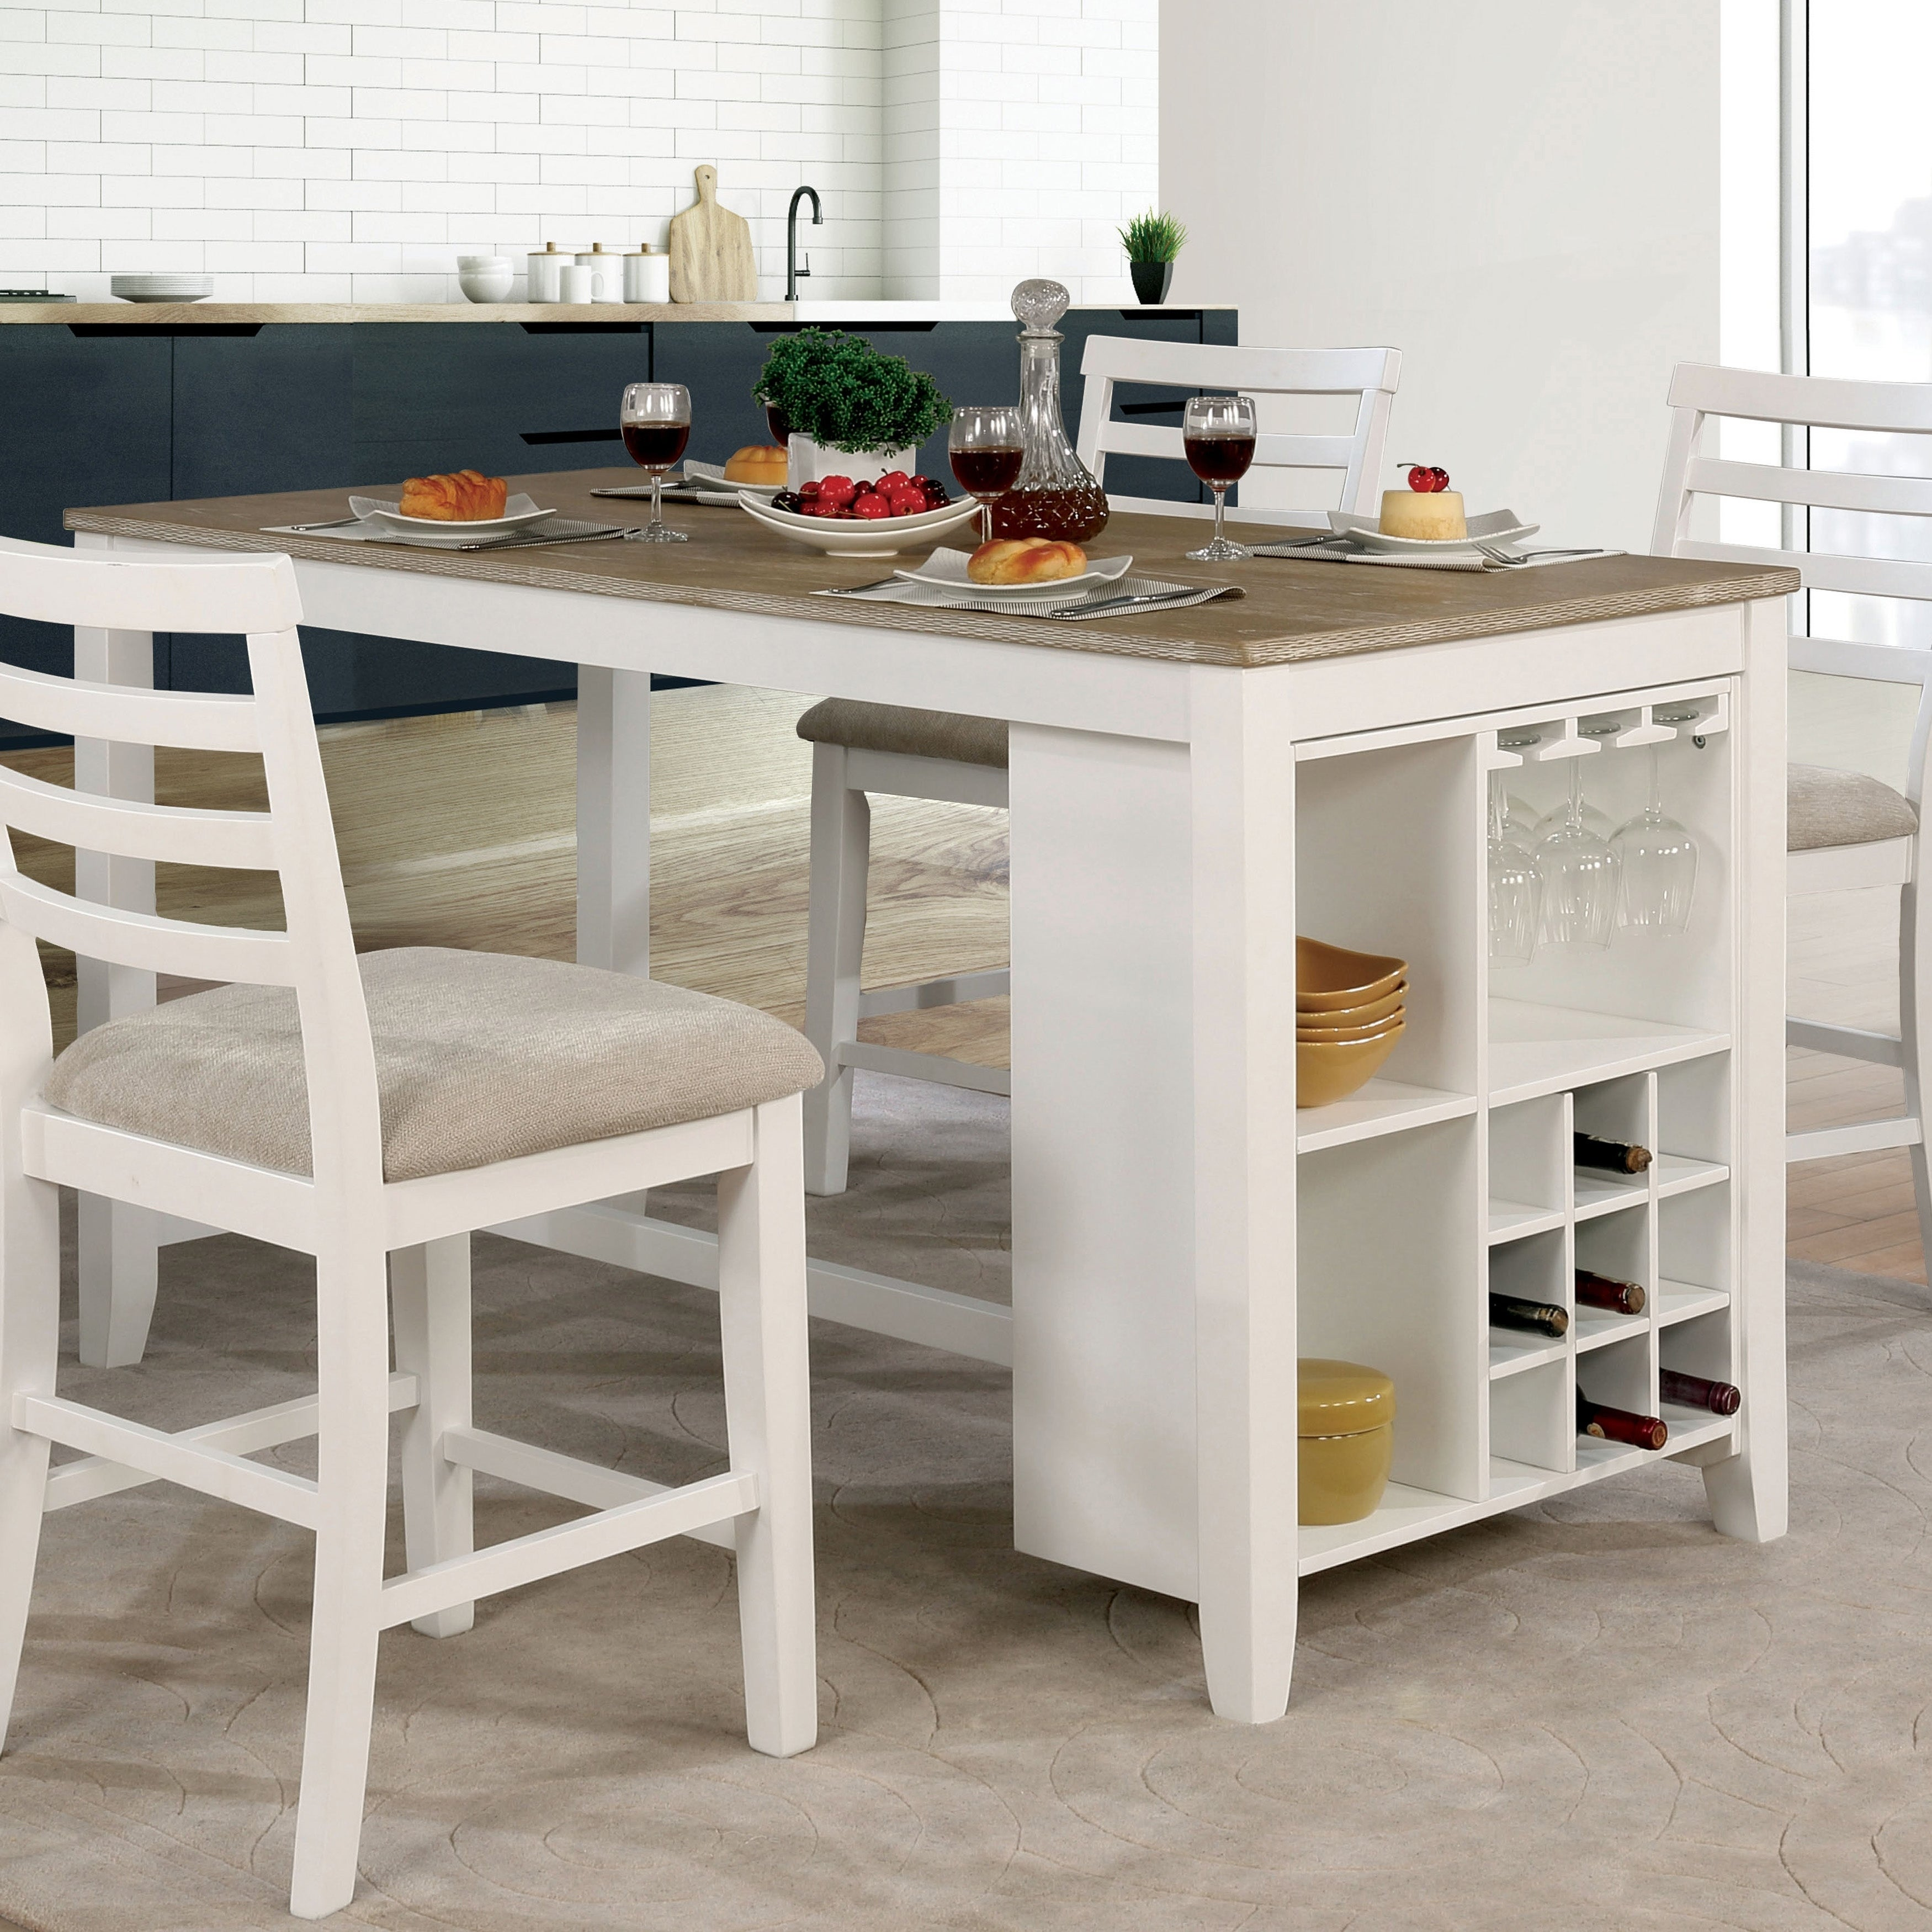 Shop Furniture Of America Clement Rustic Counter Height Dining Table